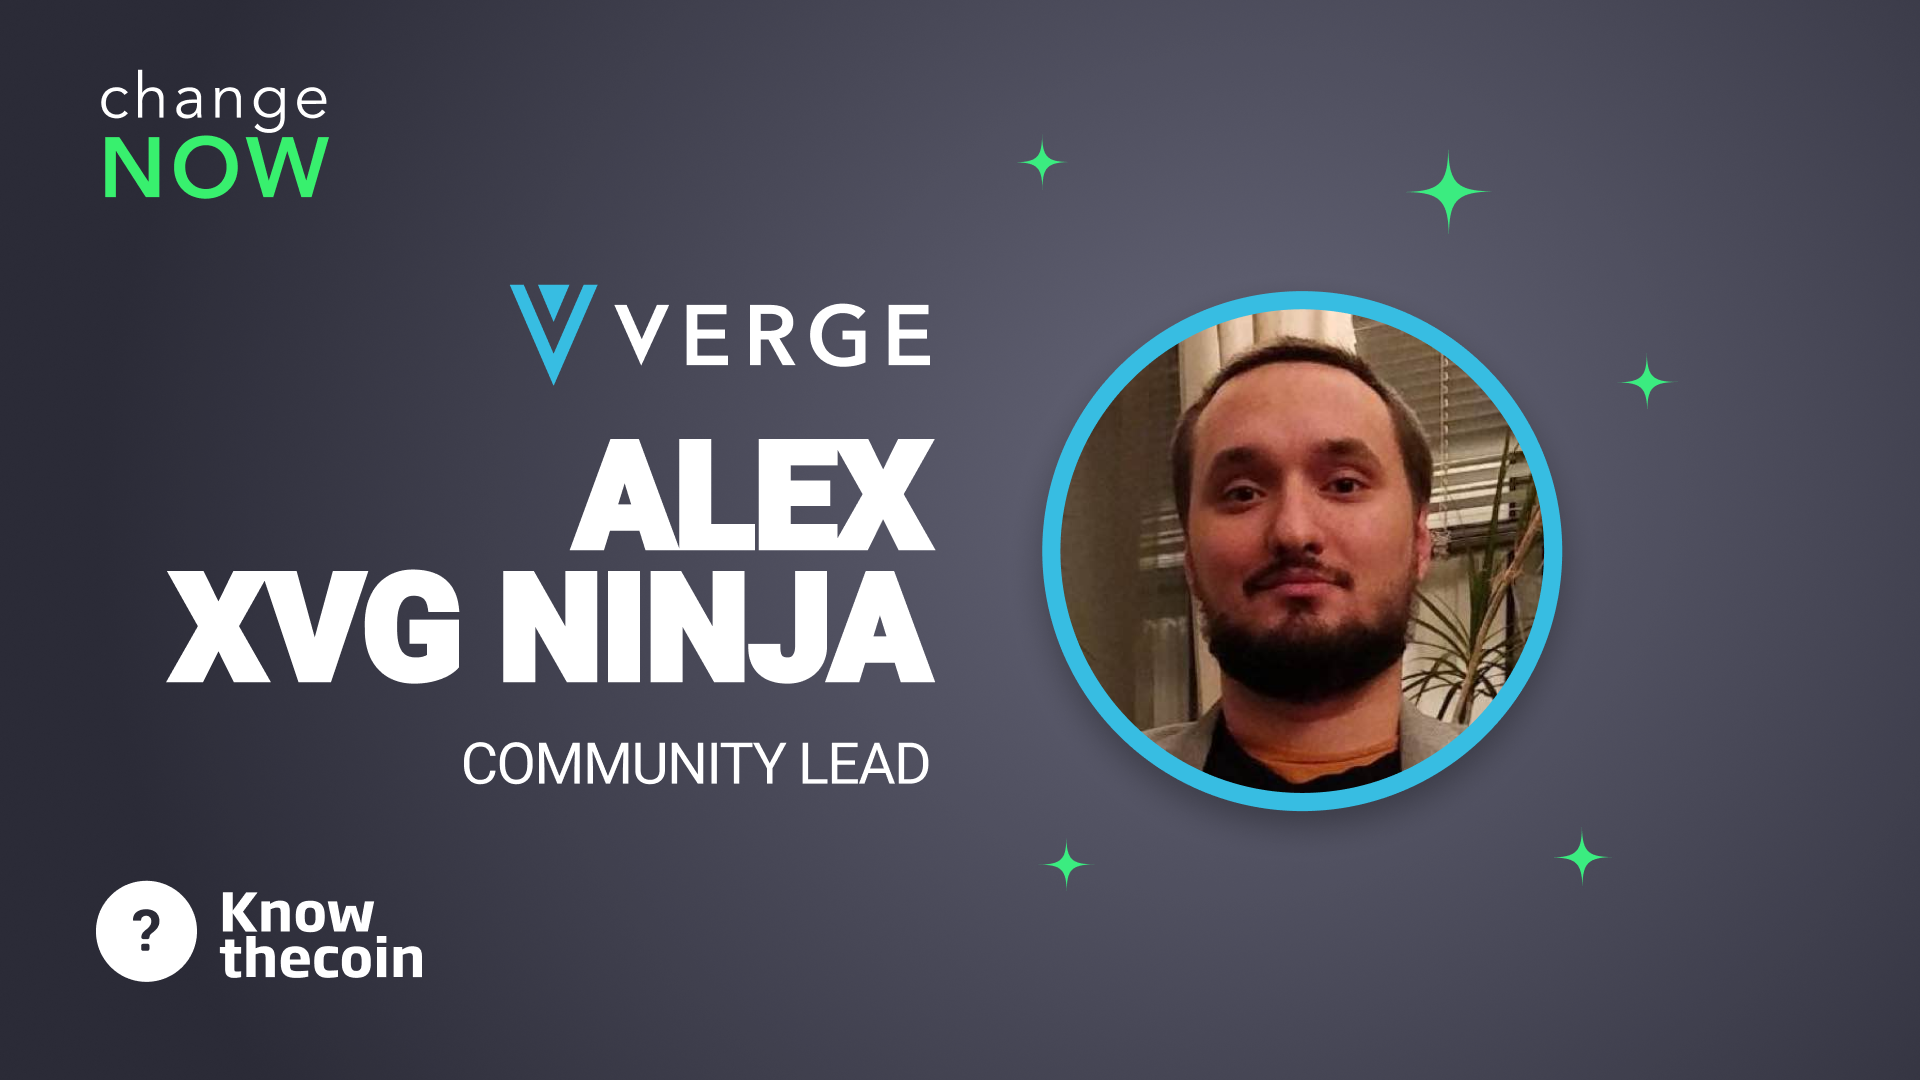 Know The Coin: Verge's Alex Ederer (aka XVG Ninja)